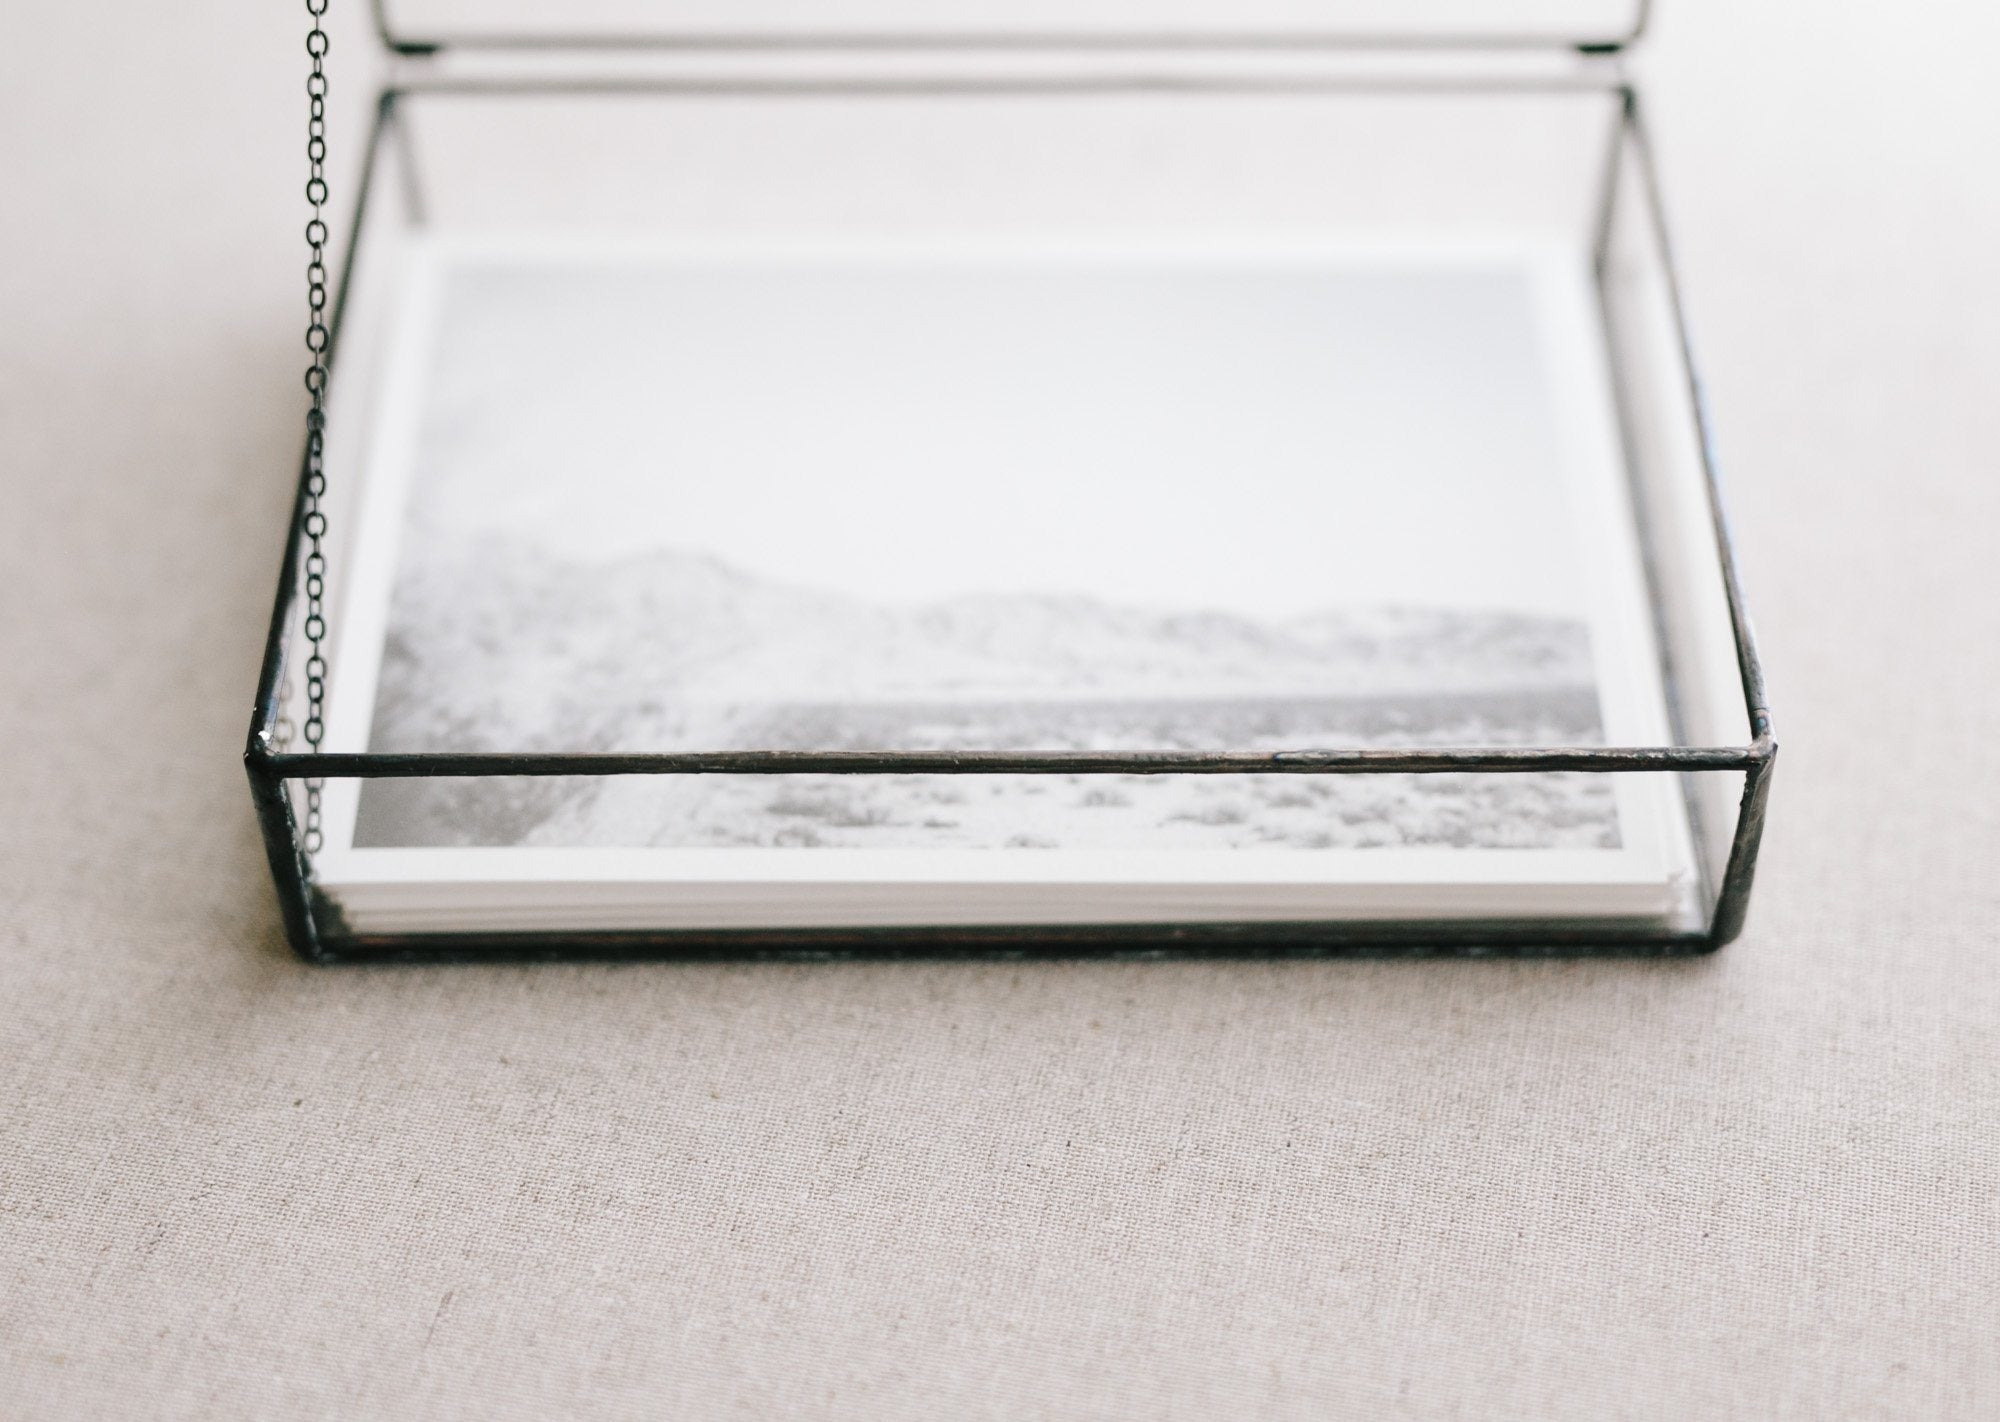 Understated Glass Box 5x7 // Mon Trésor Collection